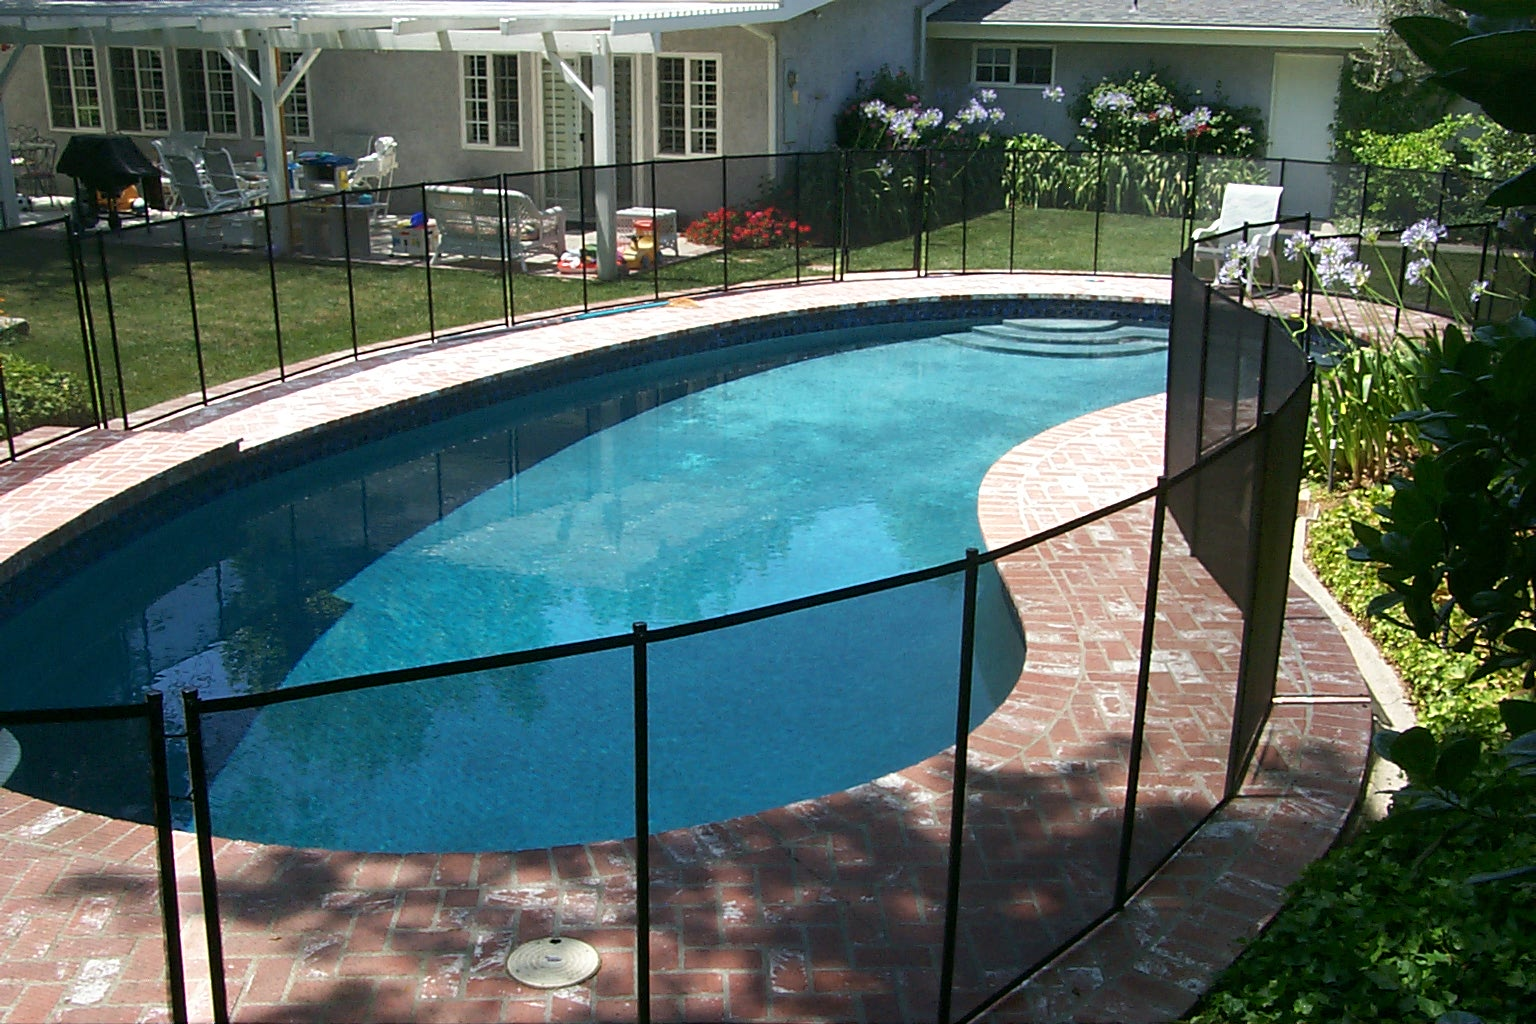 Build A Barrier Pool Safety In Bossier City La 318 470 2